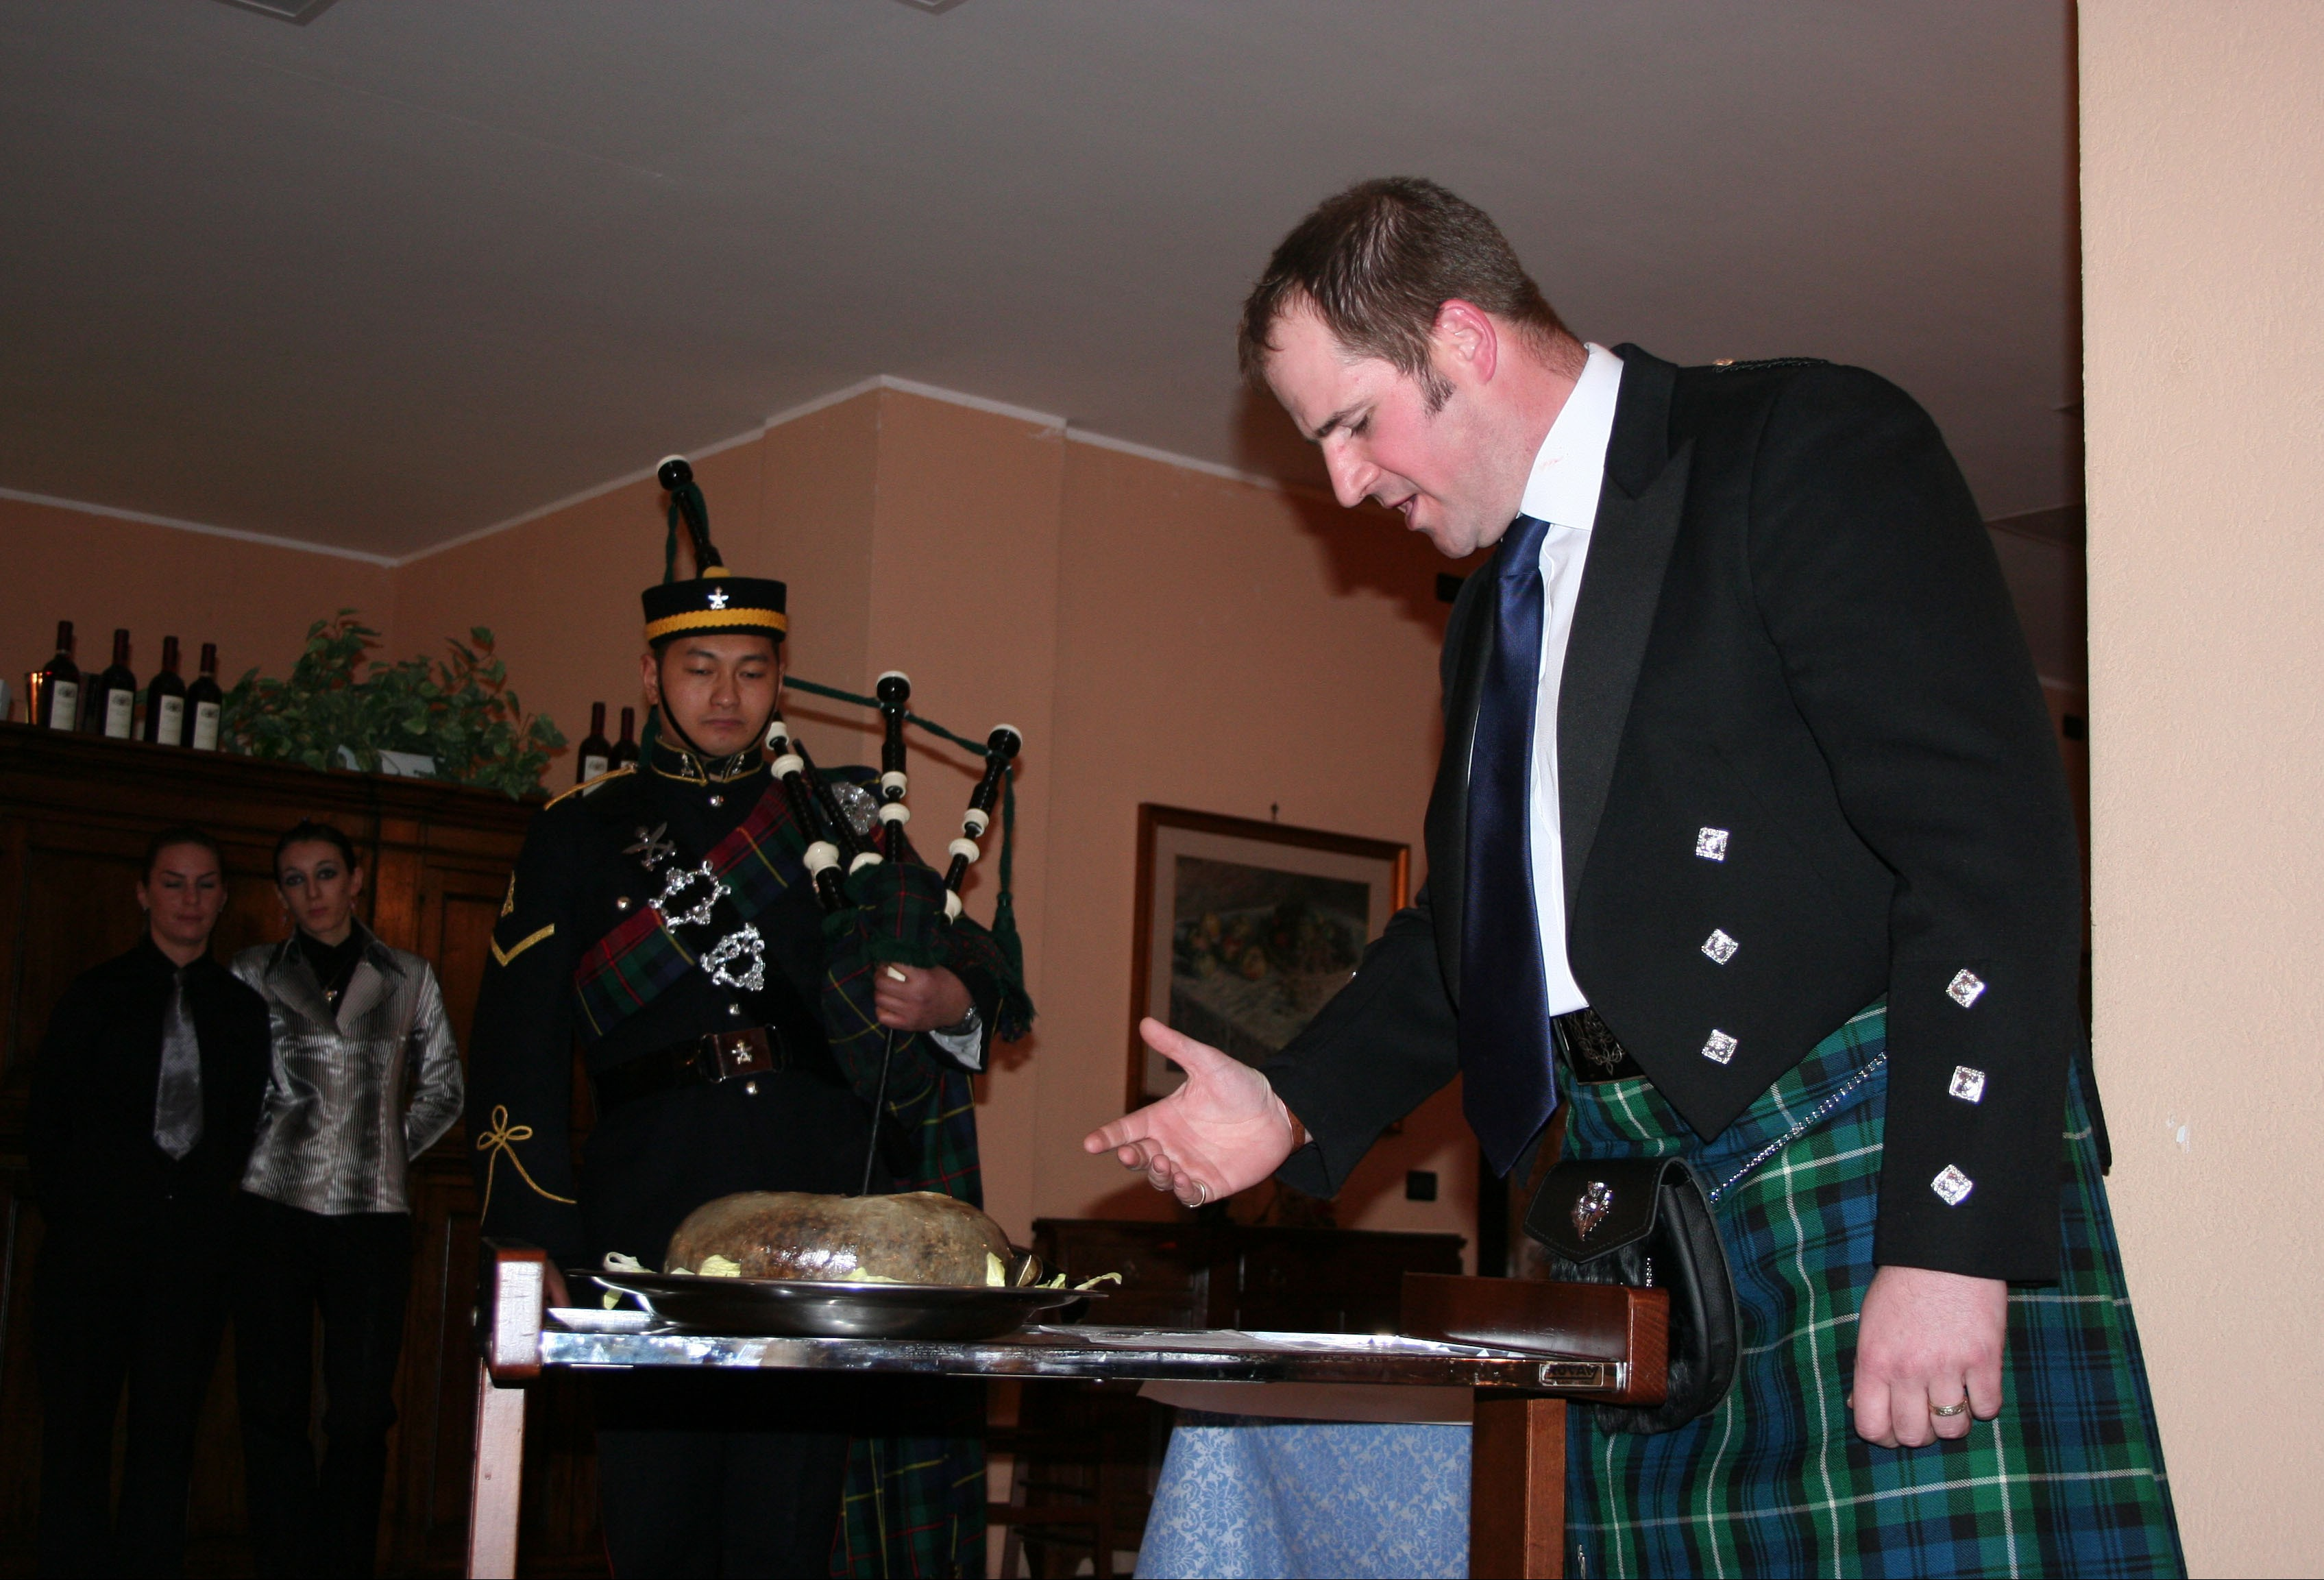 THE UK CONTINGENT CELEBRATES BURNS' NIGHT WITH INTERNATIONAL COLLEAGUES